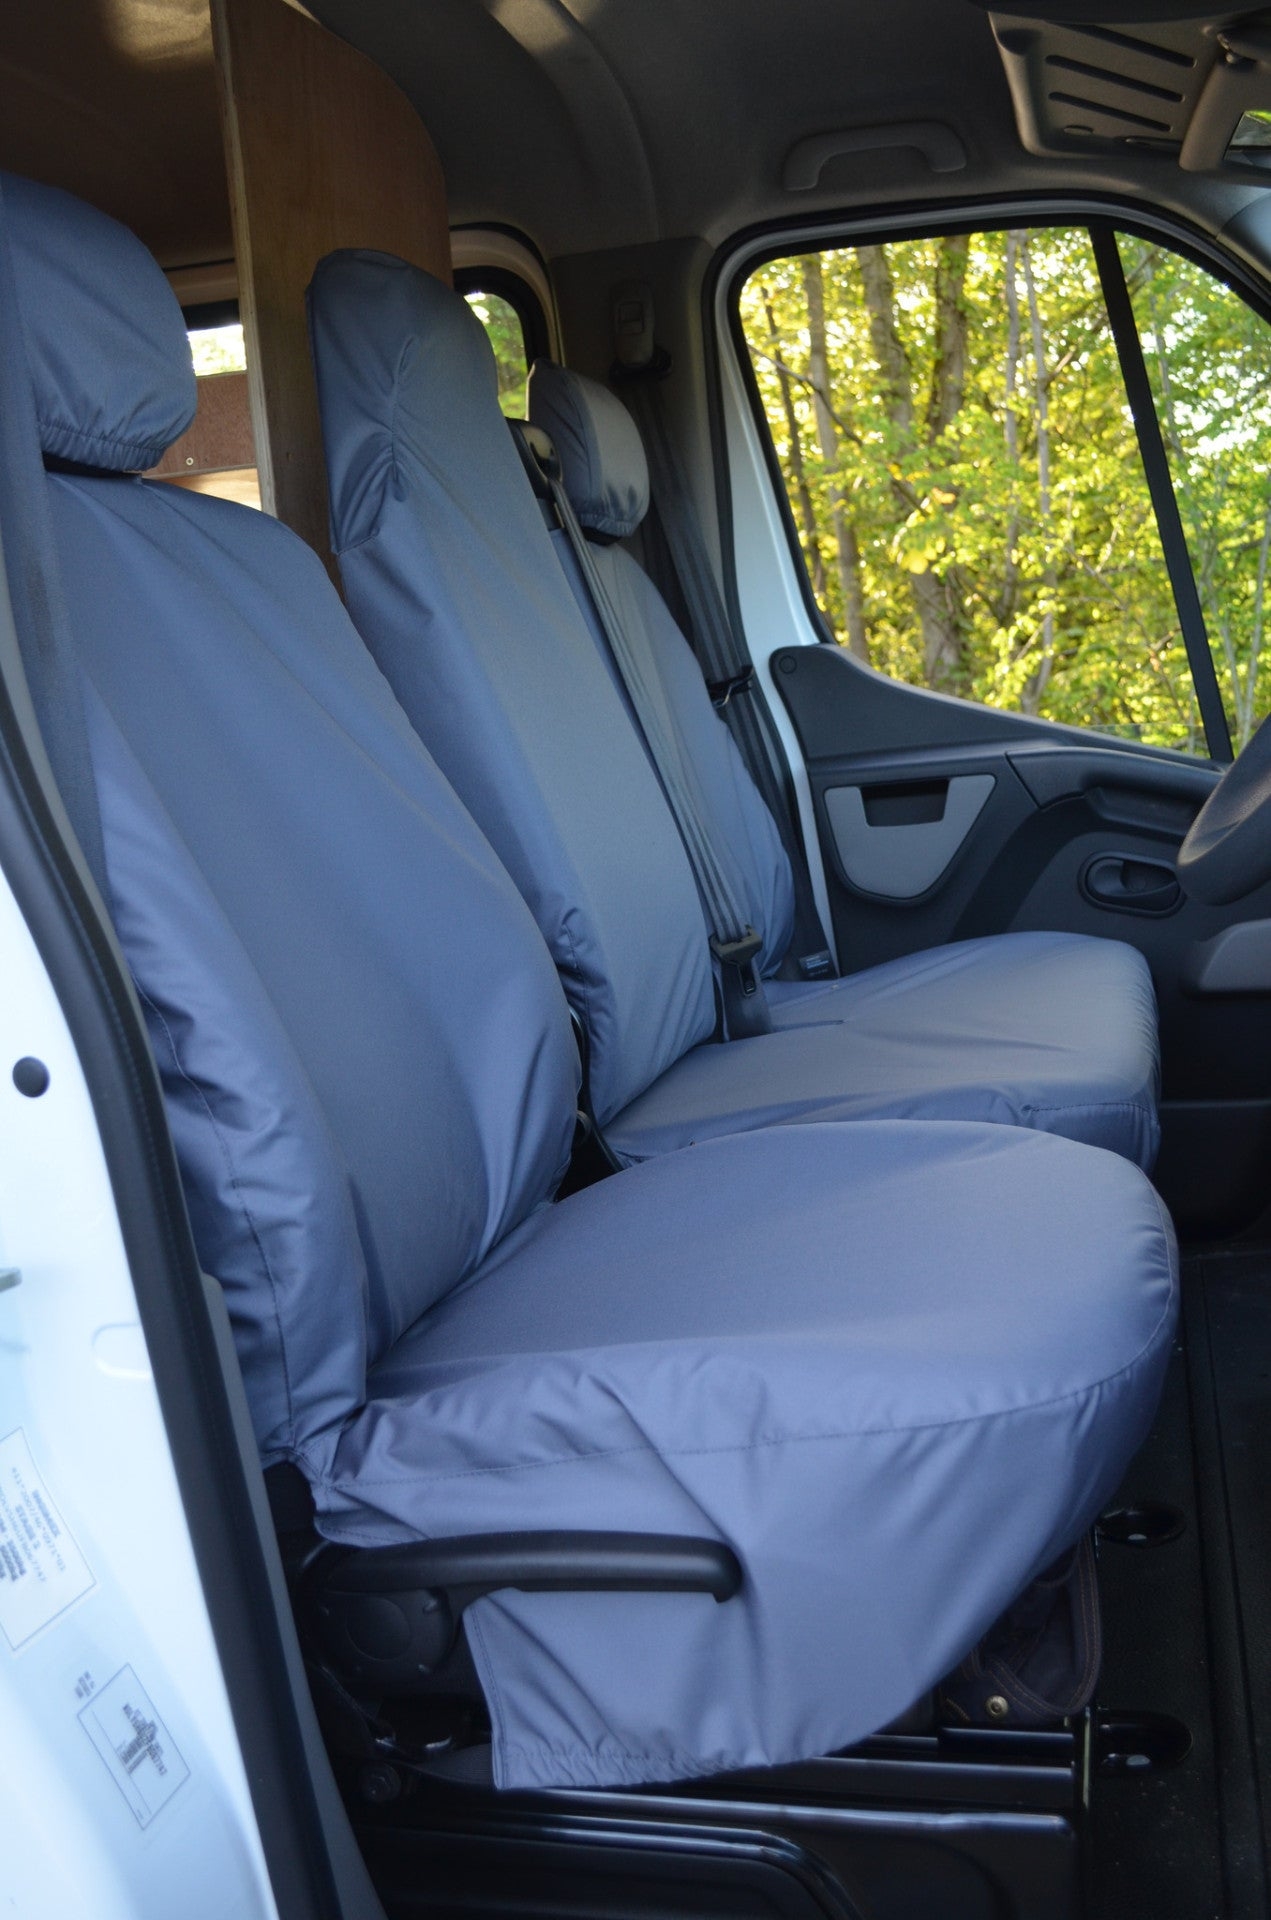 RENAULT TRAFIC 2004 HEAVY DUTY BLUE PIPING VAN SEAT COVERS